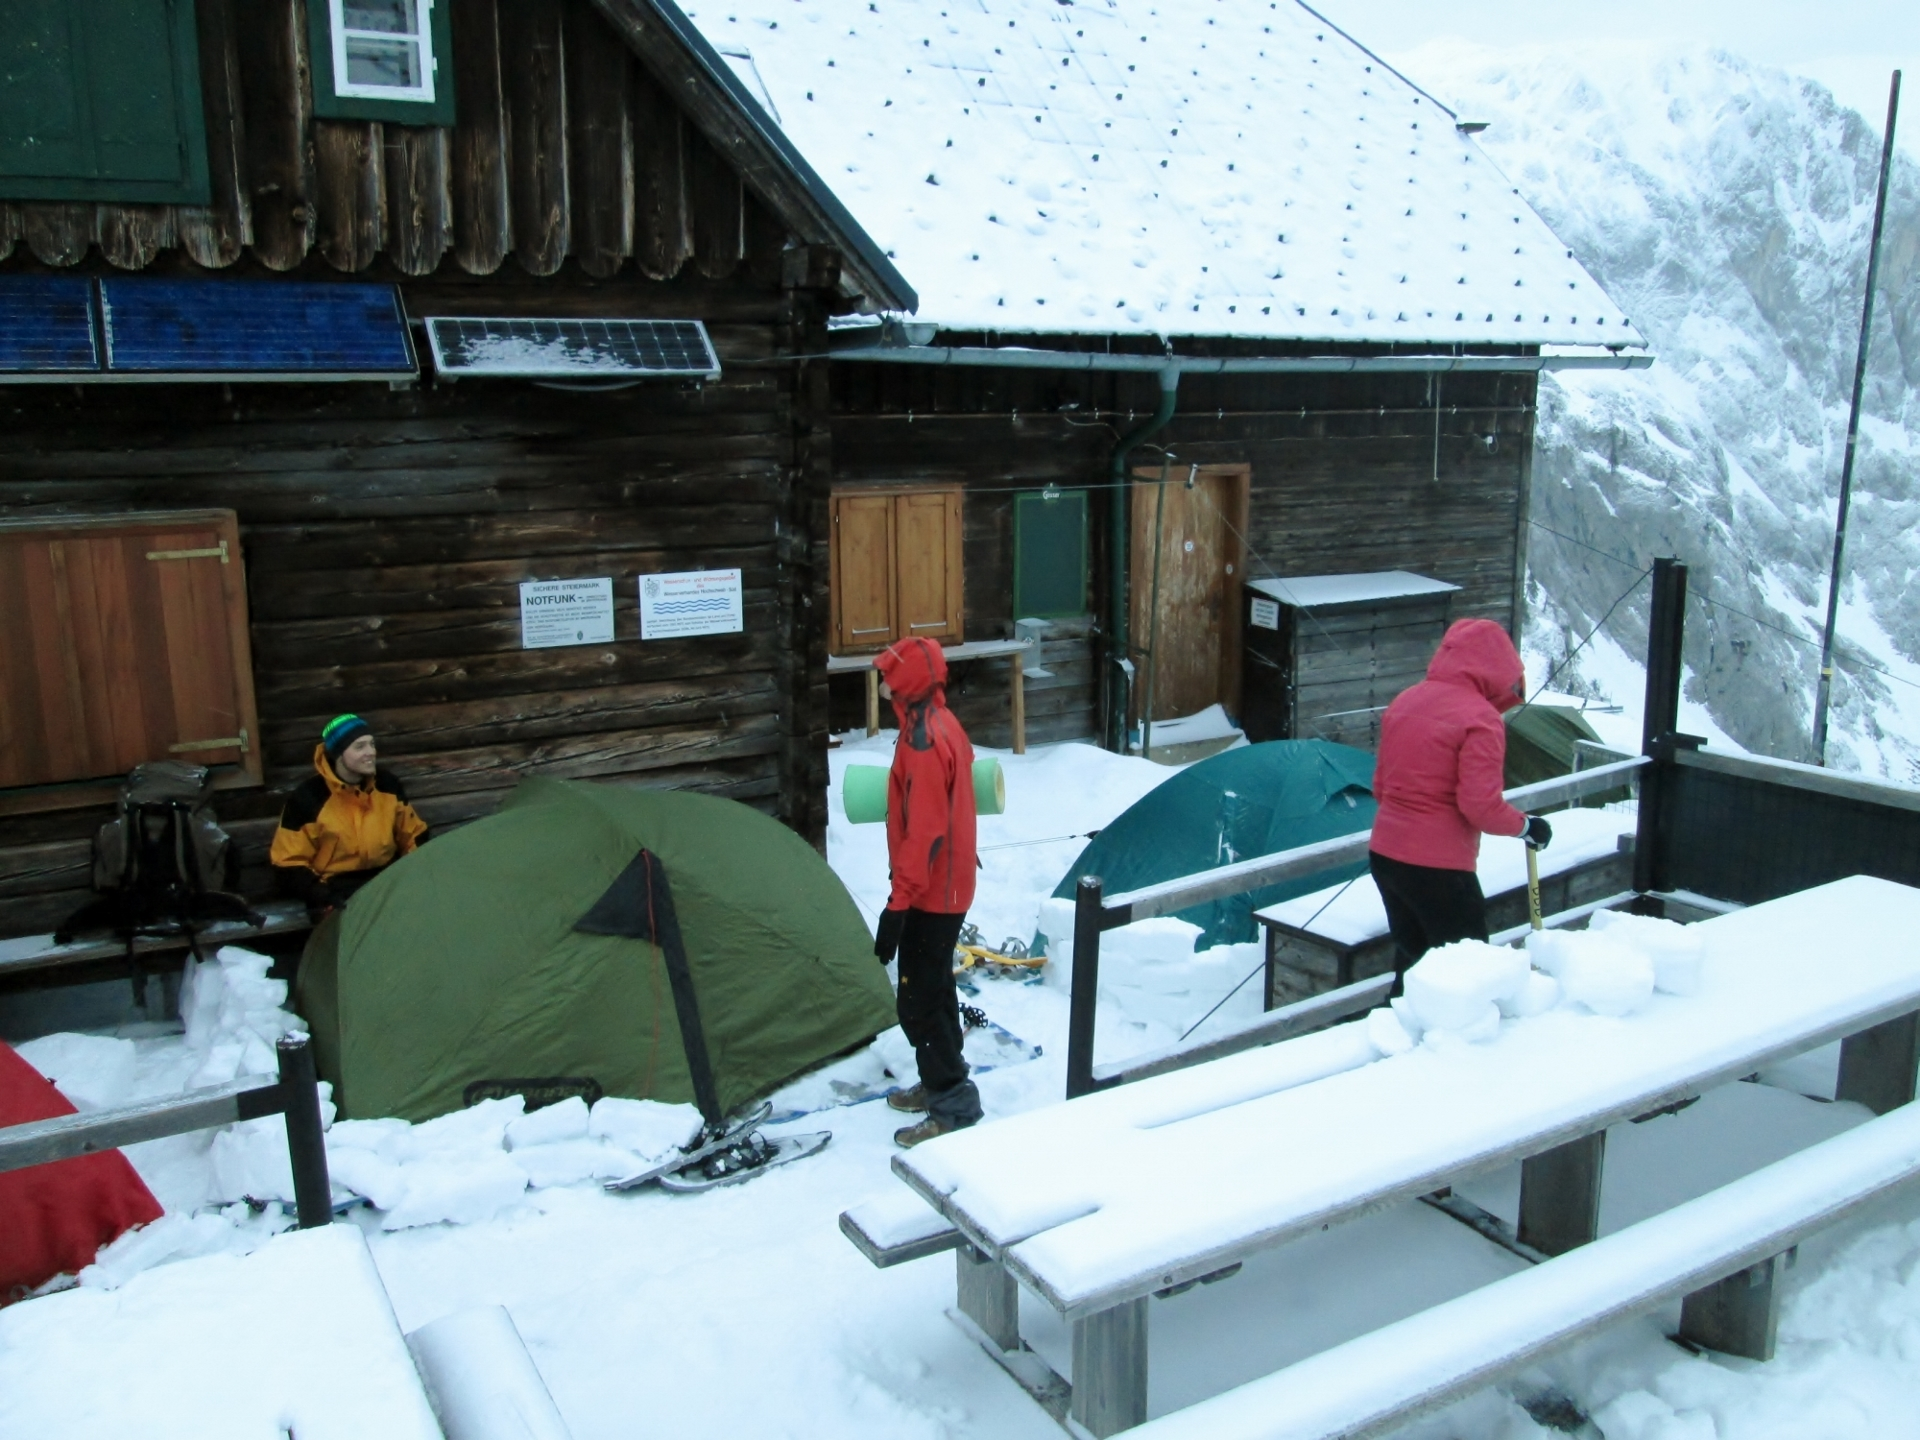 Basic expedition camp (Hungarian only) Dachstein, Ausztria #dcb539c7-257f-47b1-99ca-f8505b443fa6